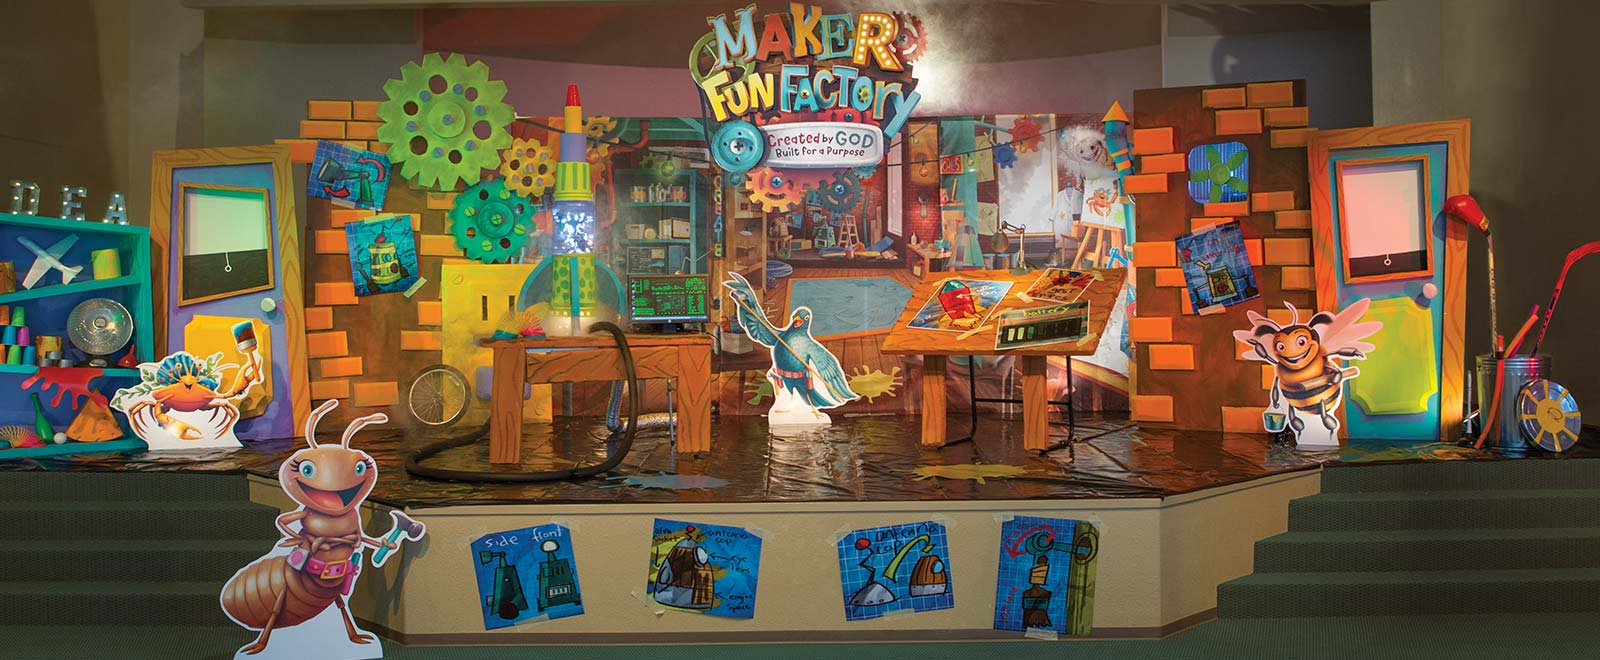 Maker Fun Factory Group Vbs 2017 Theme